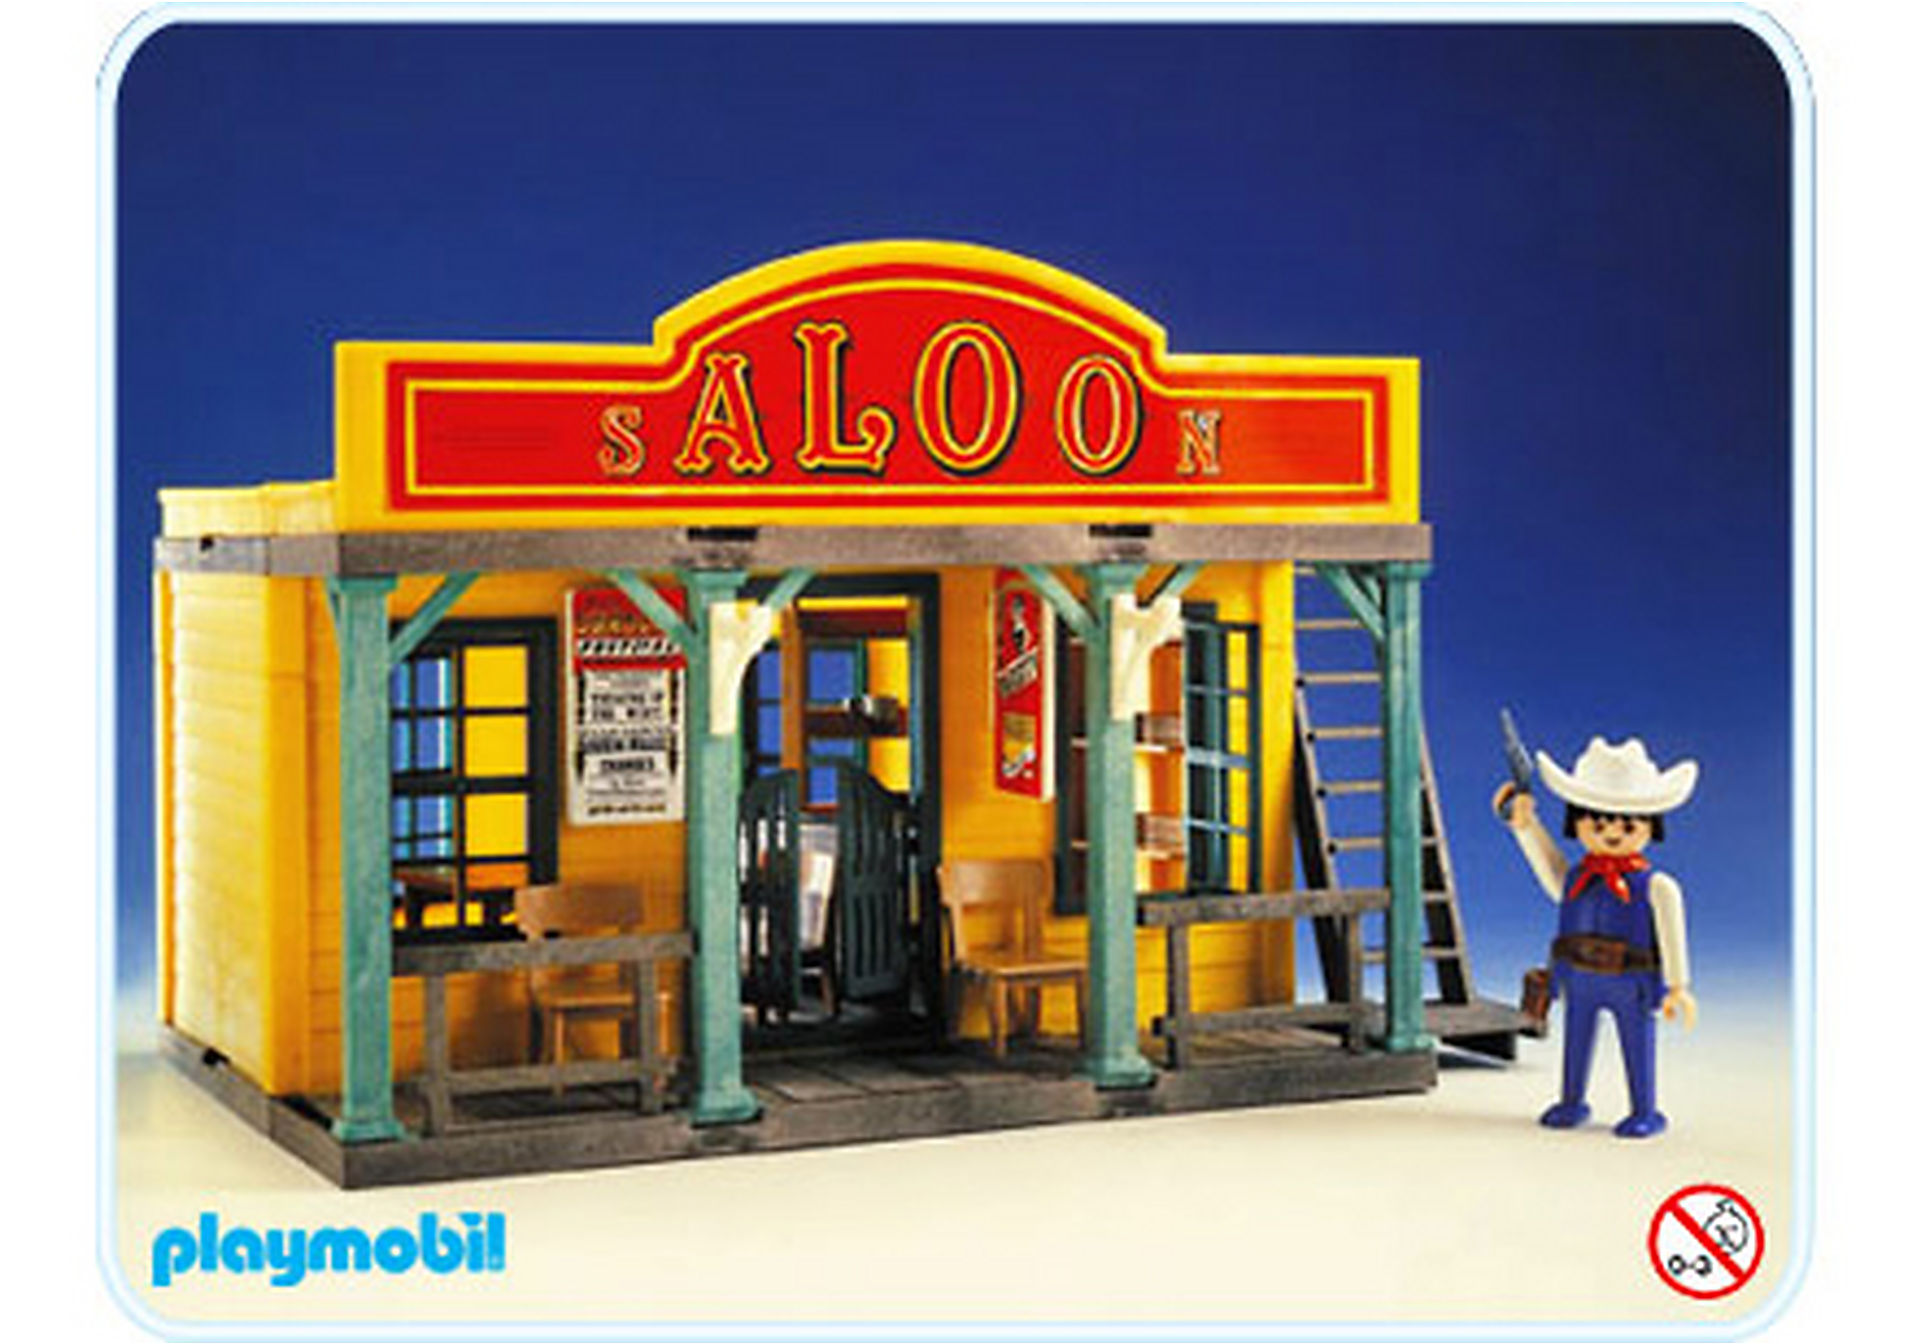 http://media.playmobil.com/i/playmobil/3461-A_product_detail/Saloon